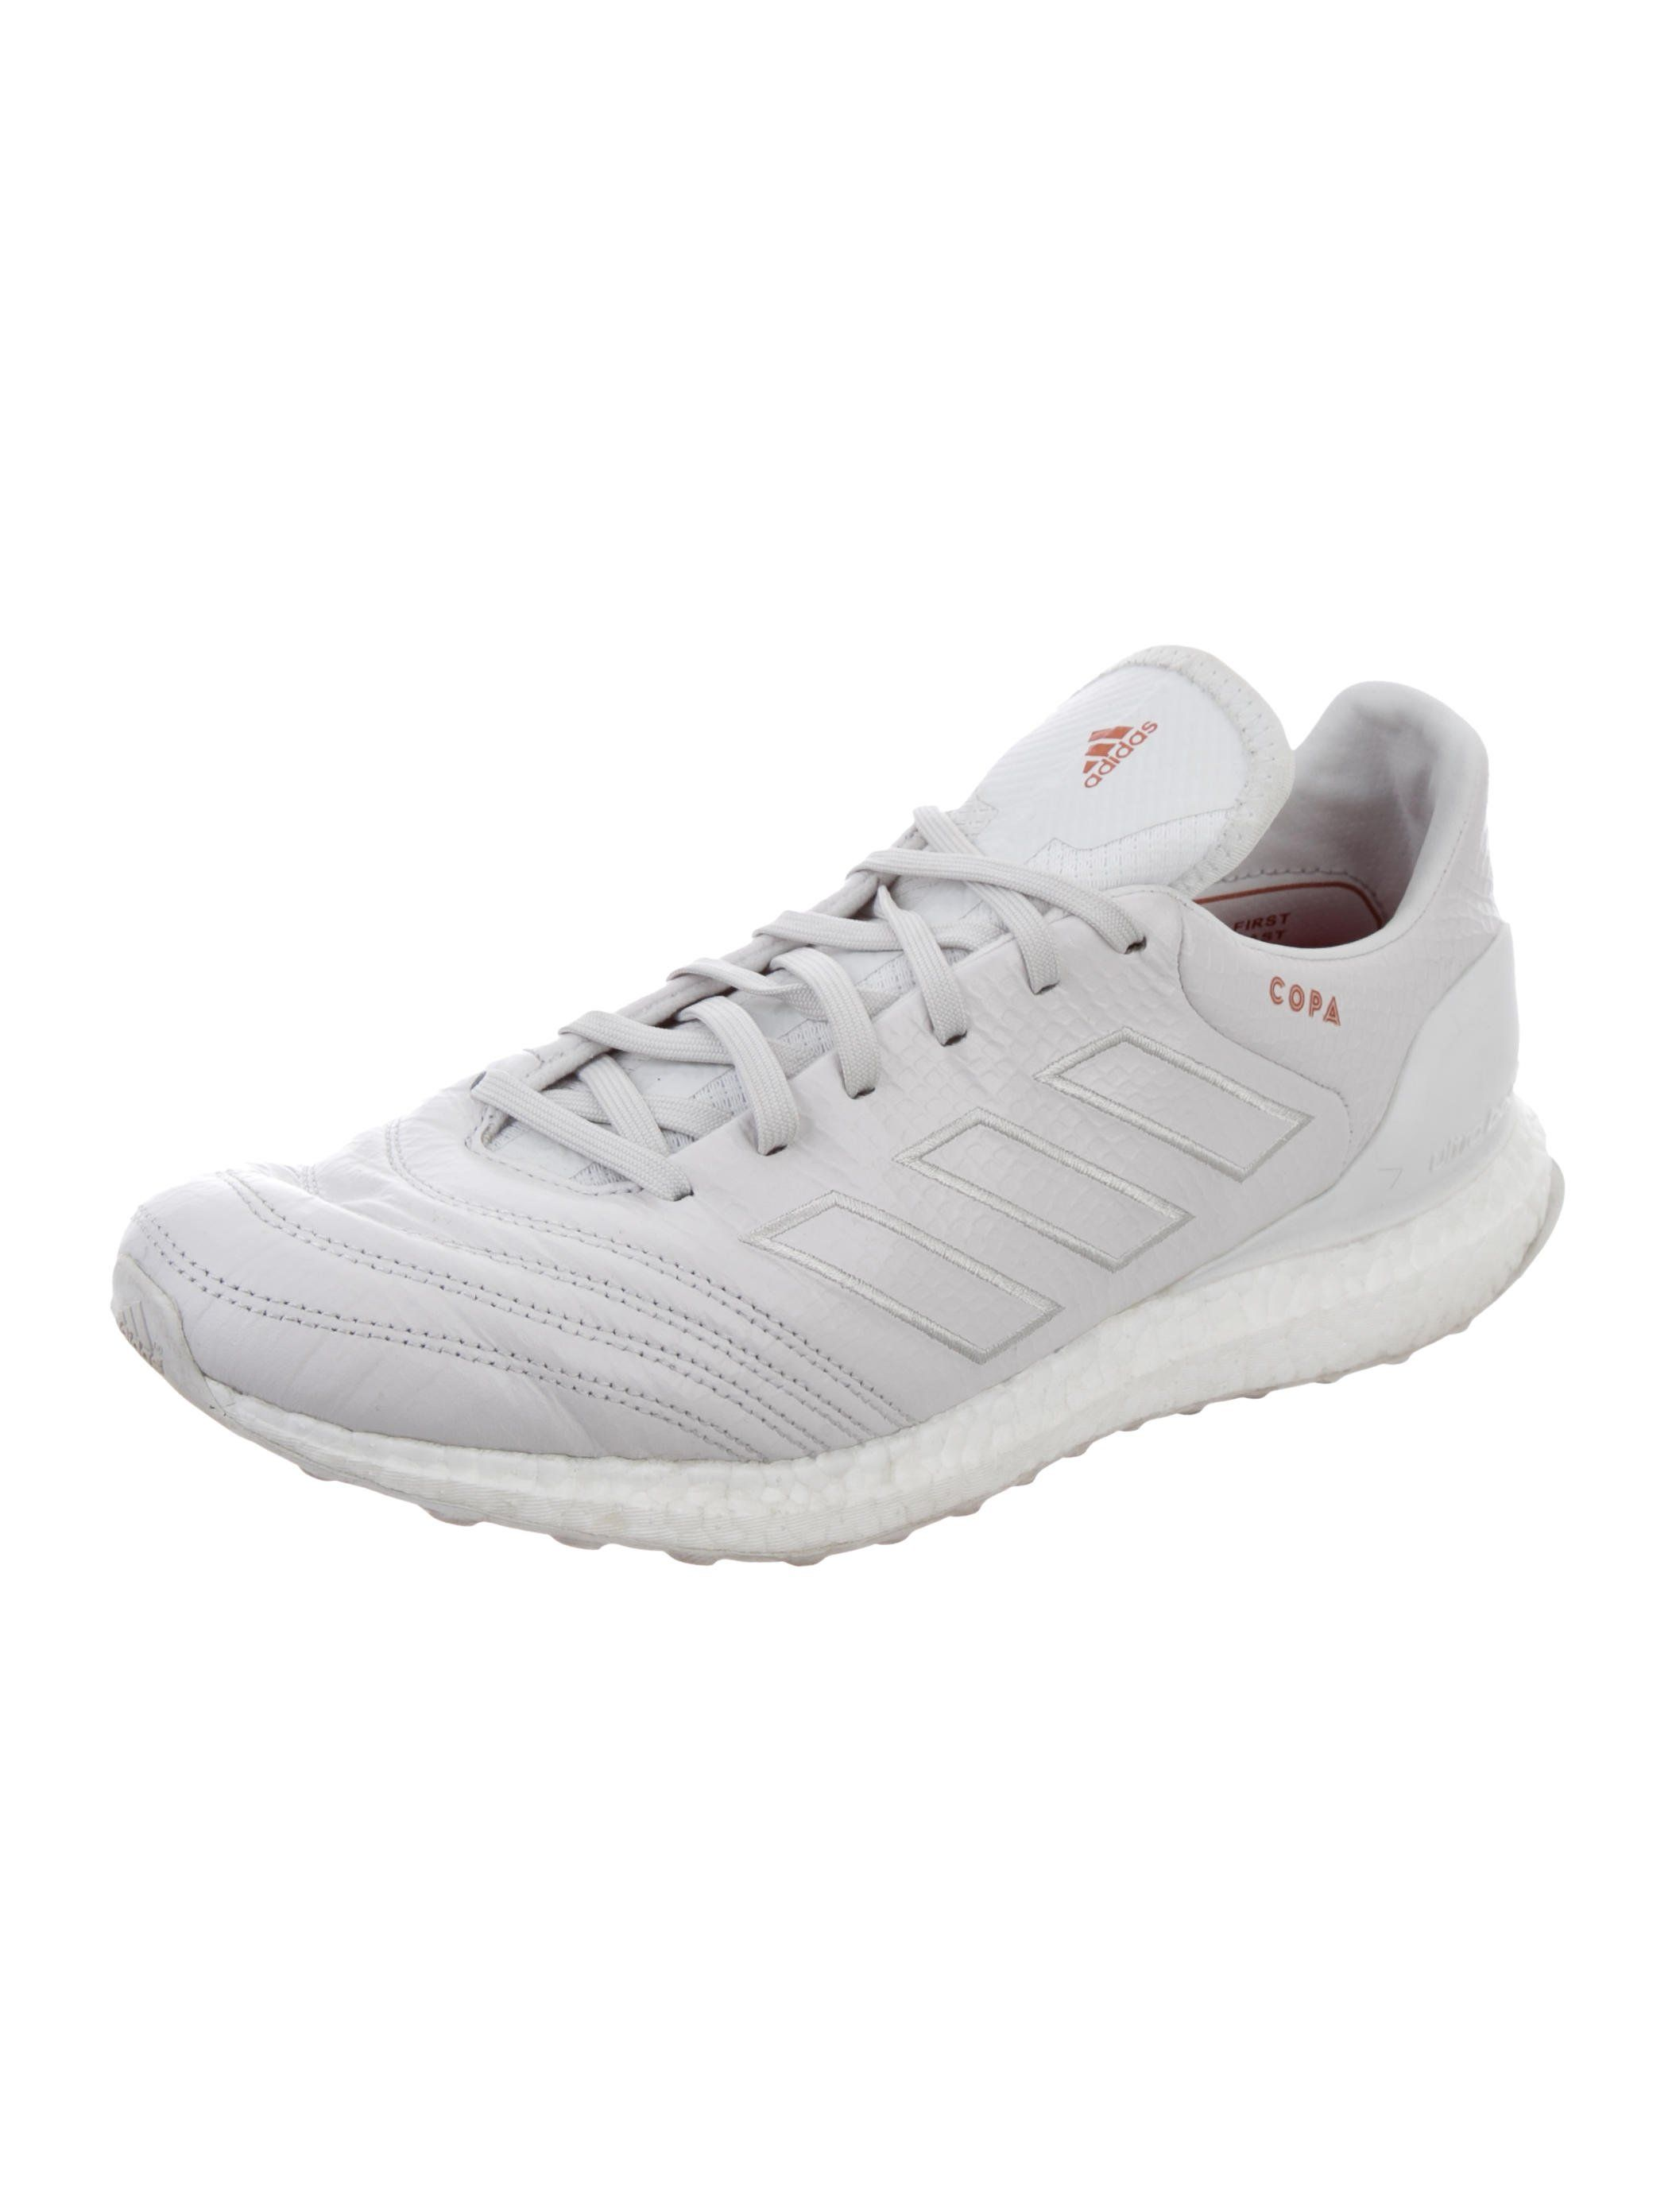 premium selection 2f0bd 03903 From the June 2017 Kith Collaboration. Men s white embossed leather Adidas  Copa Mundial 17 Ultraboost  Kith Cobras  round-toe low-top sneakers with  tonal st